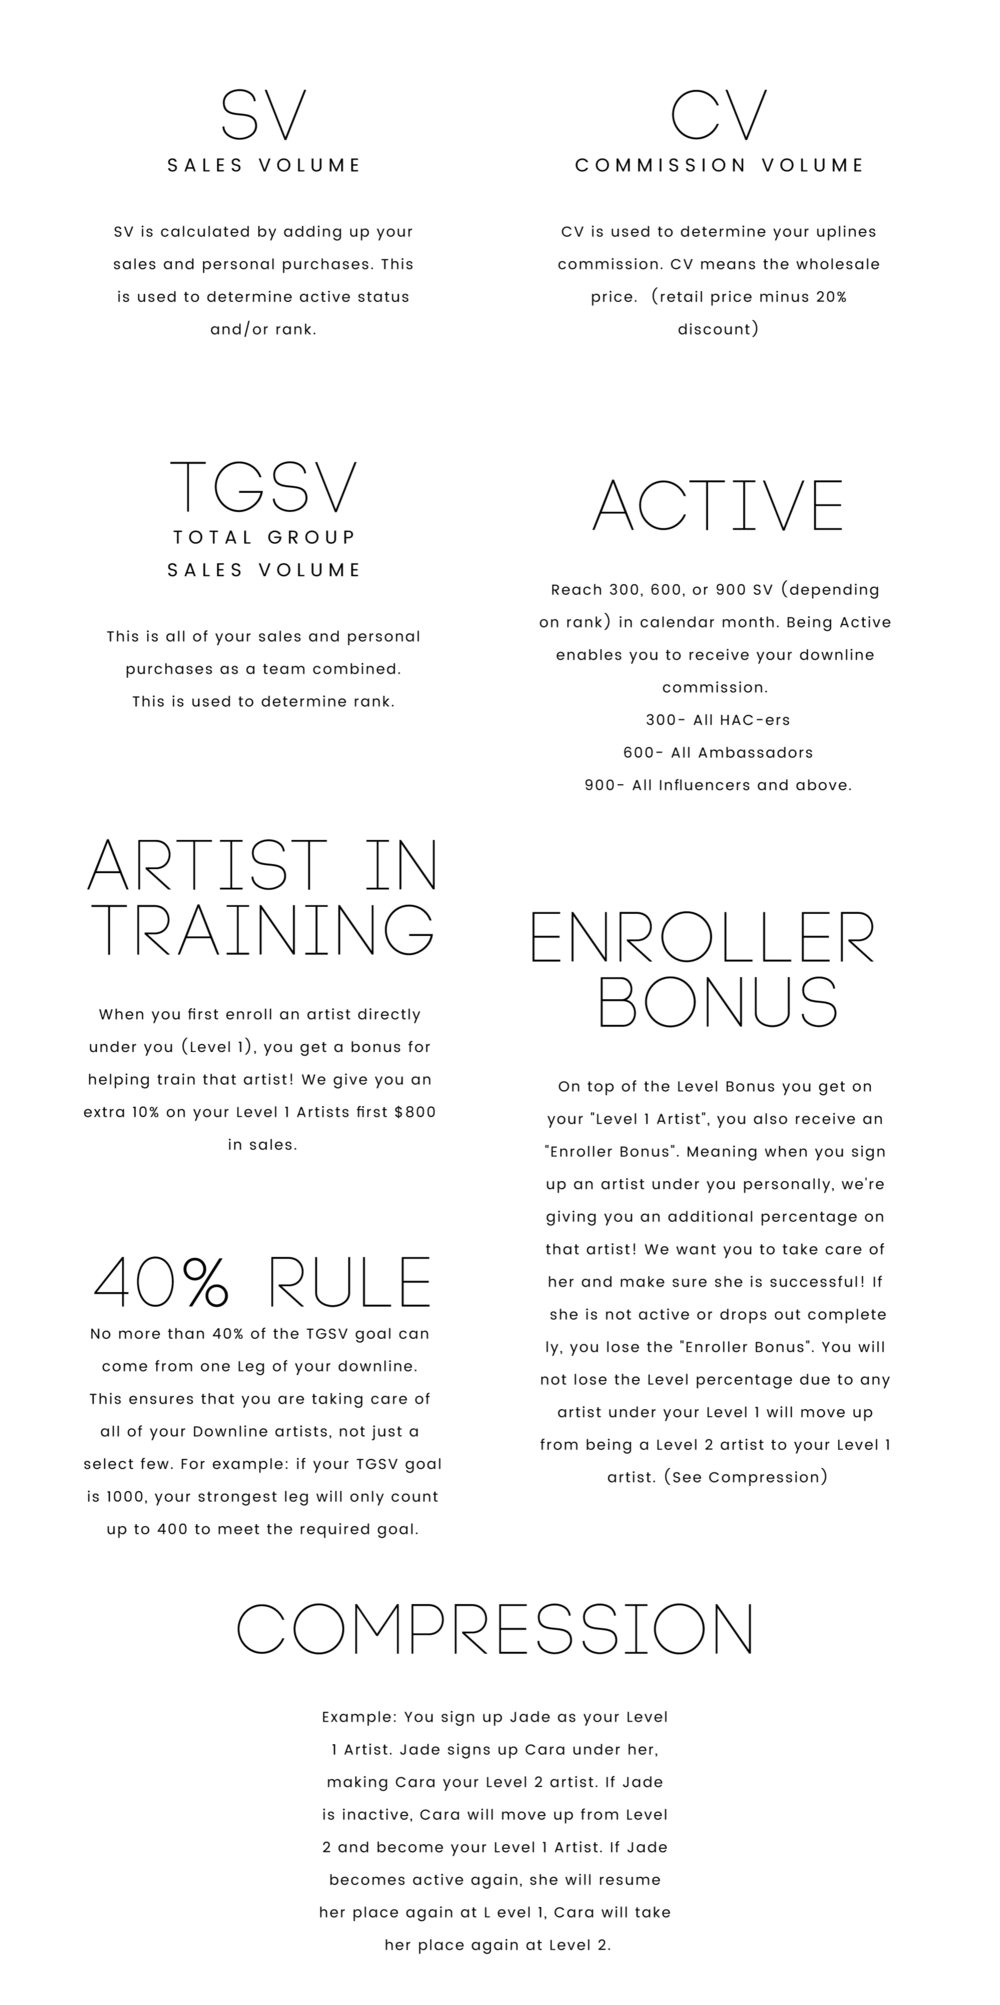 Maskcara Artist Glossary of terms. Learn What SV, CV, Active and more!